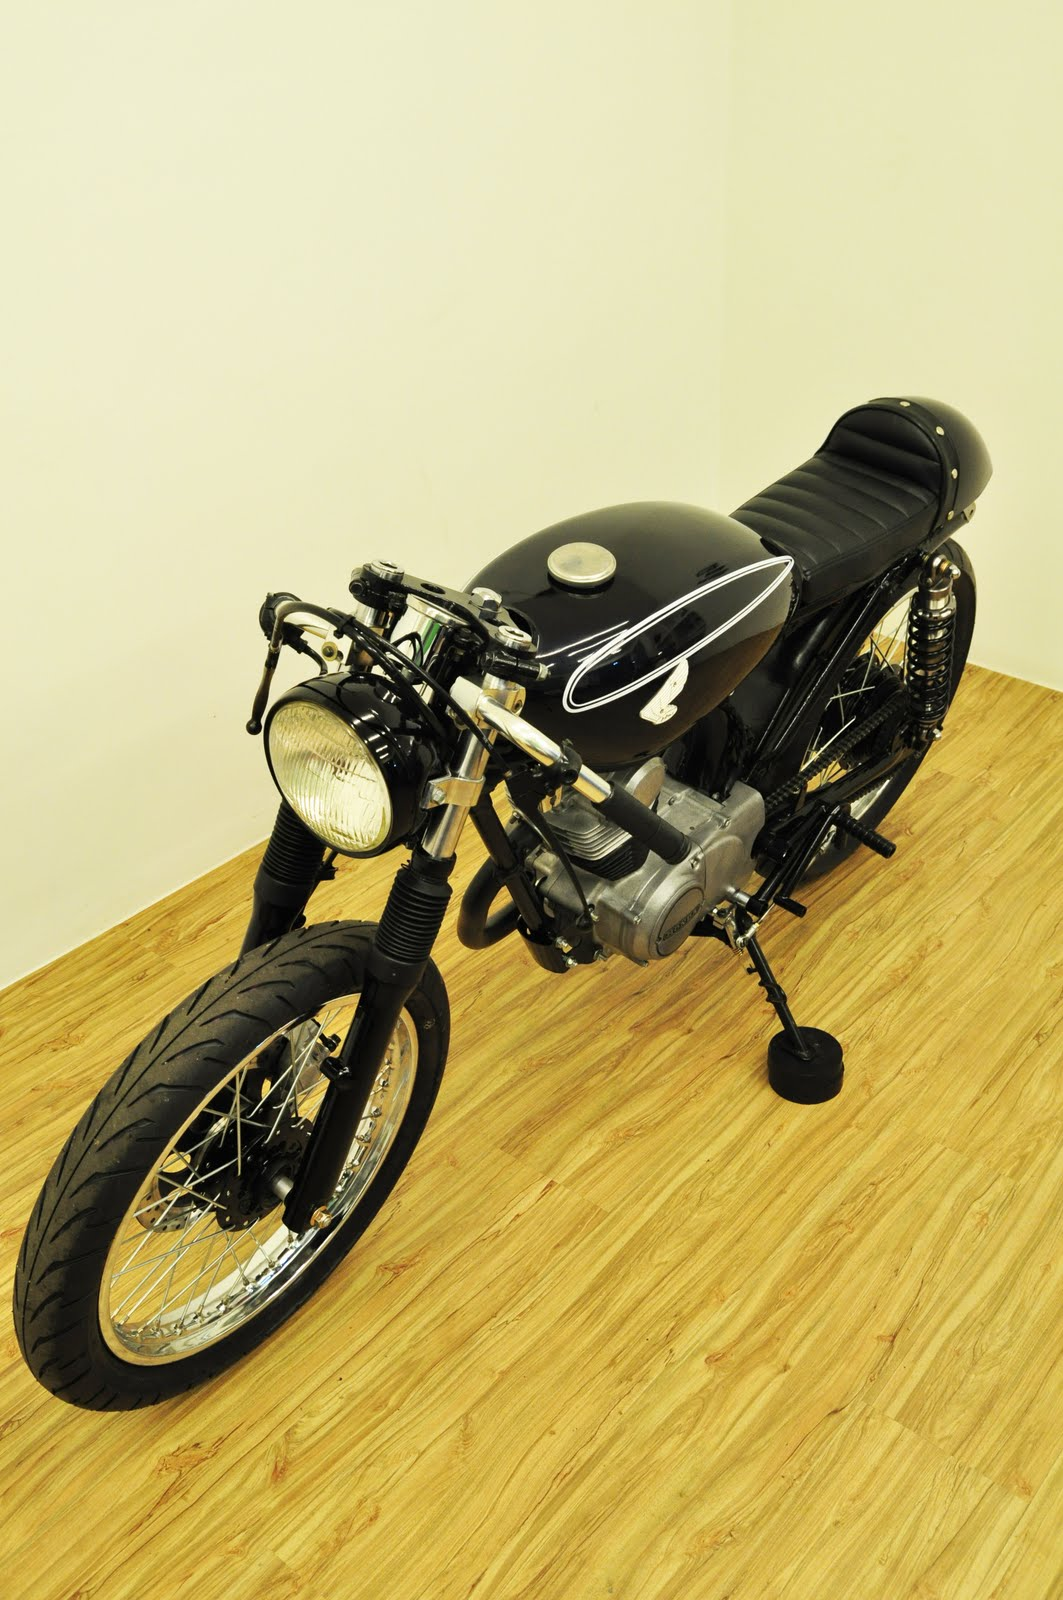 Honda CB100 Cafe Racer | Honda Cafe Racer | Honda CB100 Cafe Racer parts | Honda CB100 Cafe Racer seat | Honda CB100 Cafe Racer for sale